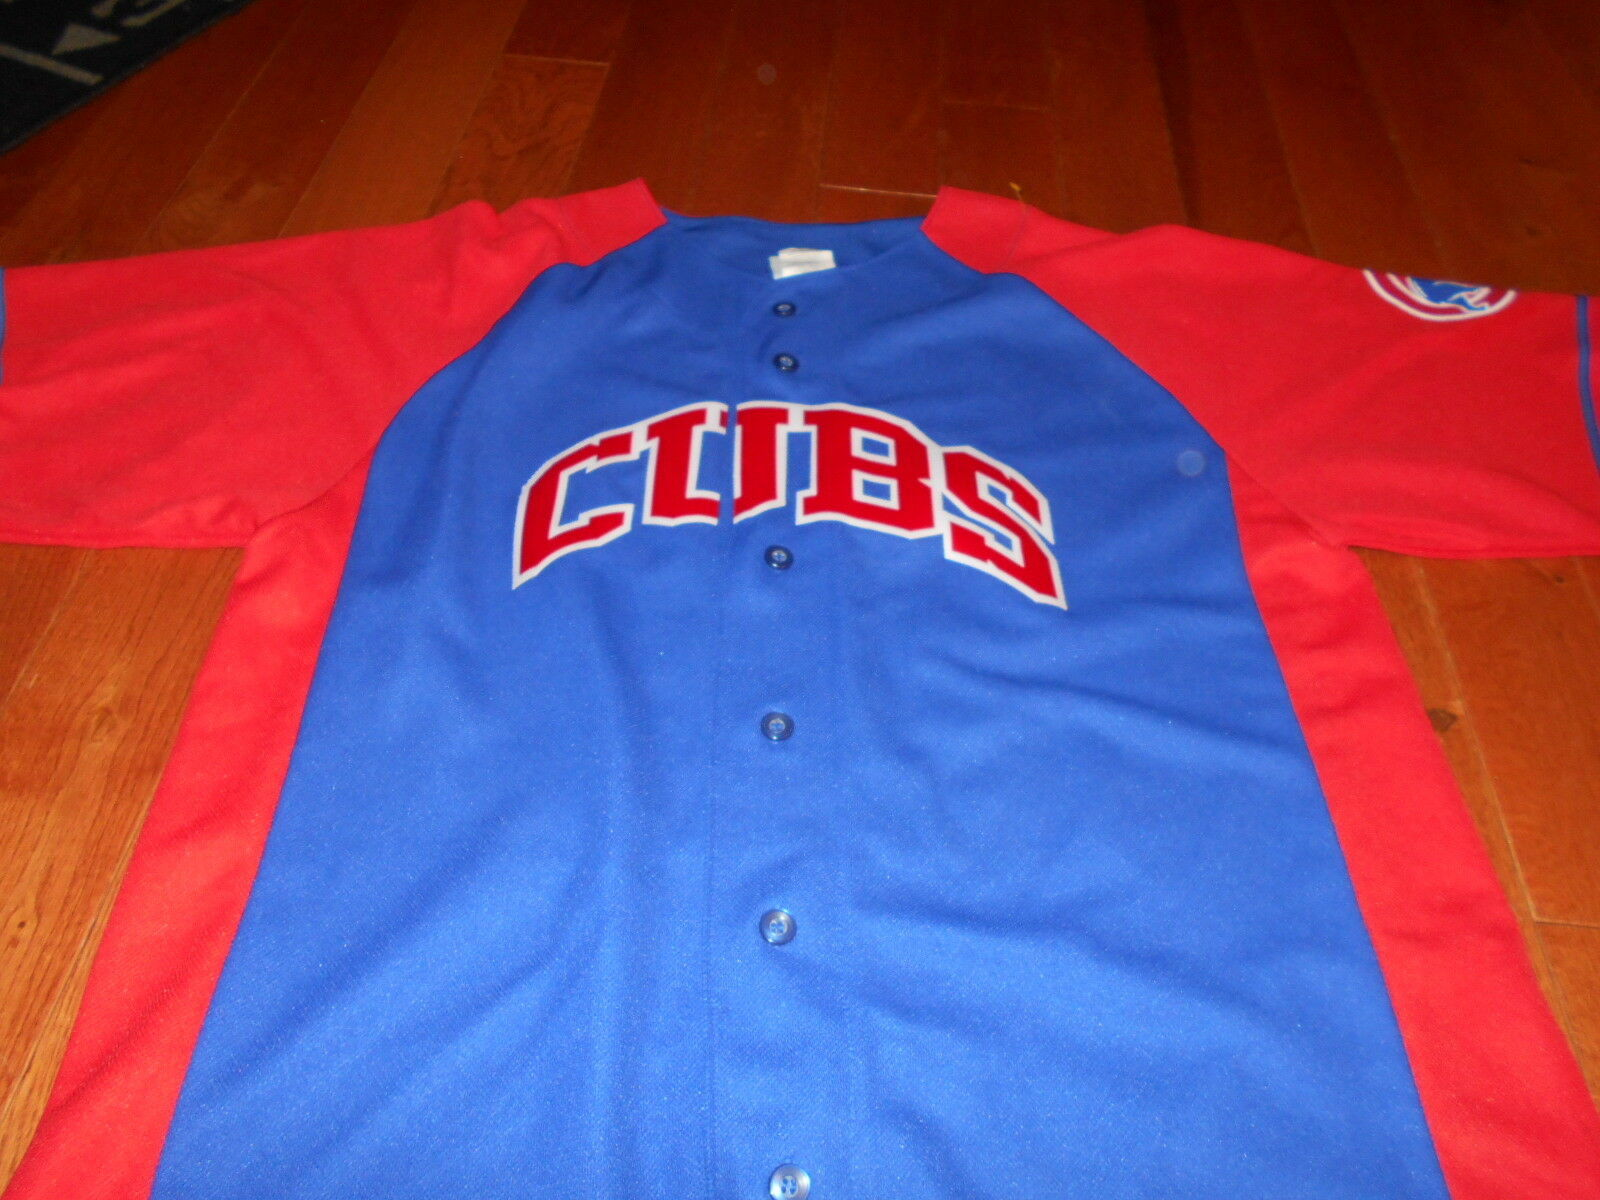 CHICAGO CUBS ALFONSO SORIANO Blue & Red Baseball MLB ROAD Large L JERSEY Officia